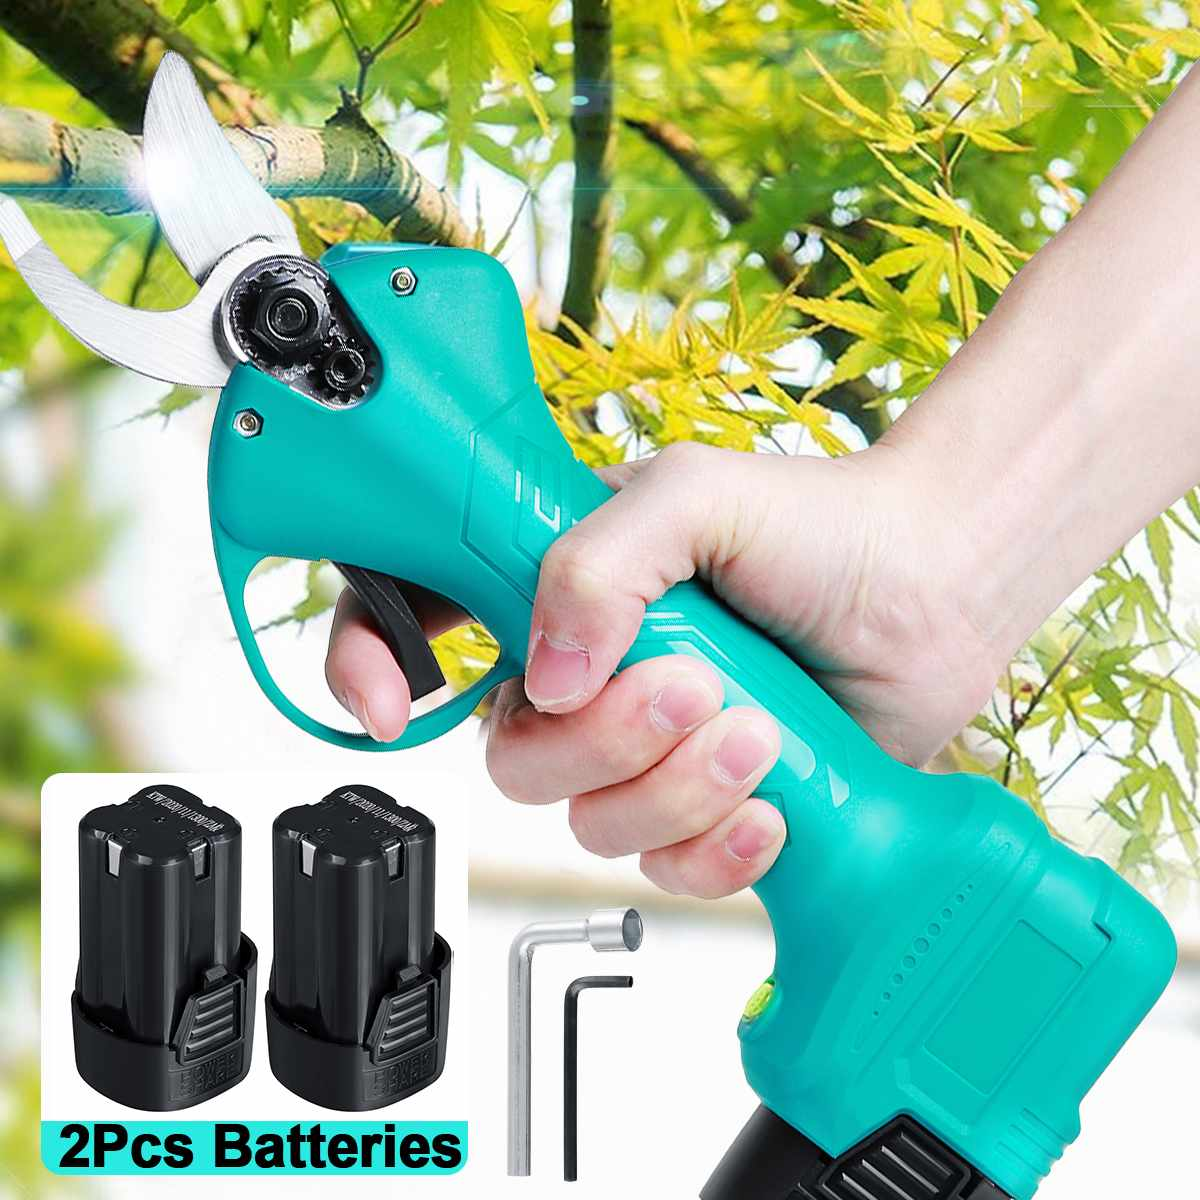 21V Cordless Pruner Electric Pruning Shear Trimmer Cutter  Efficient Fruit Tree Bonsai Garden Scissors with Lithium-ion Battery